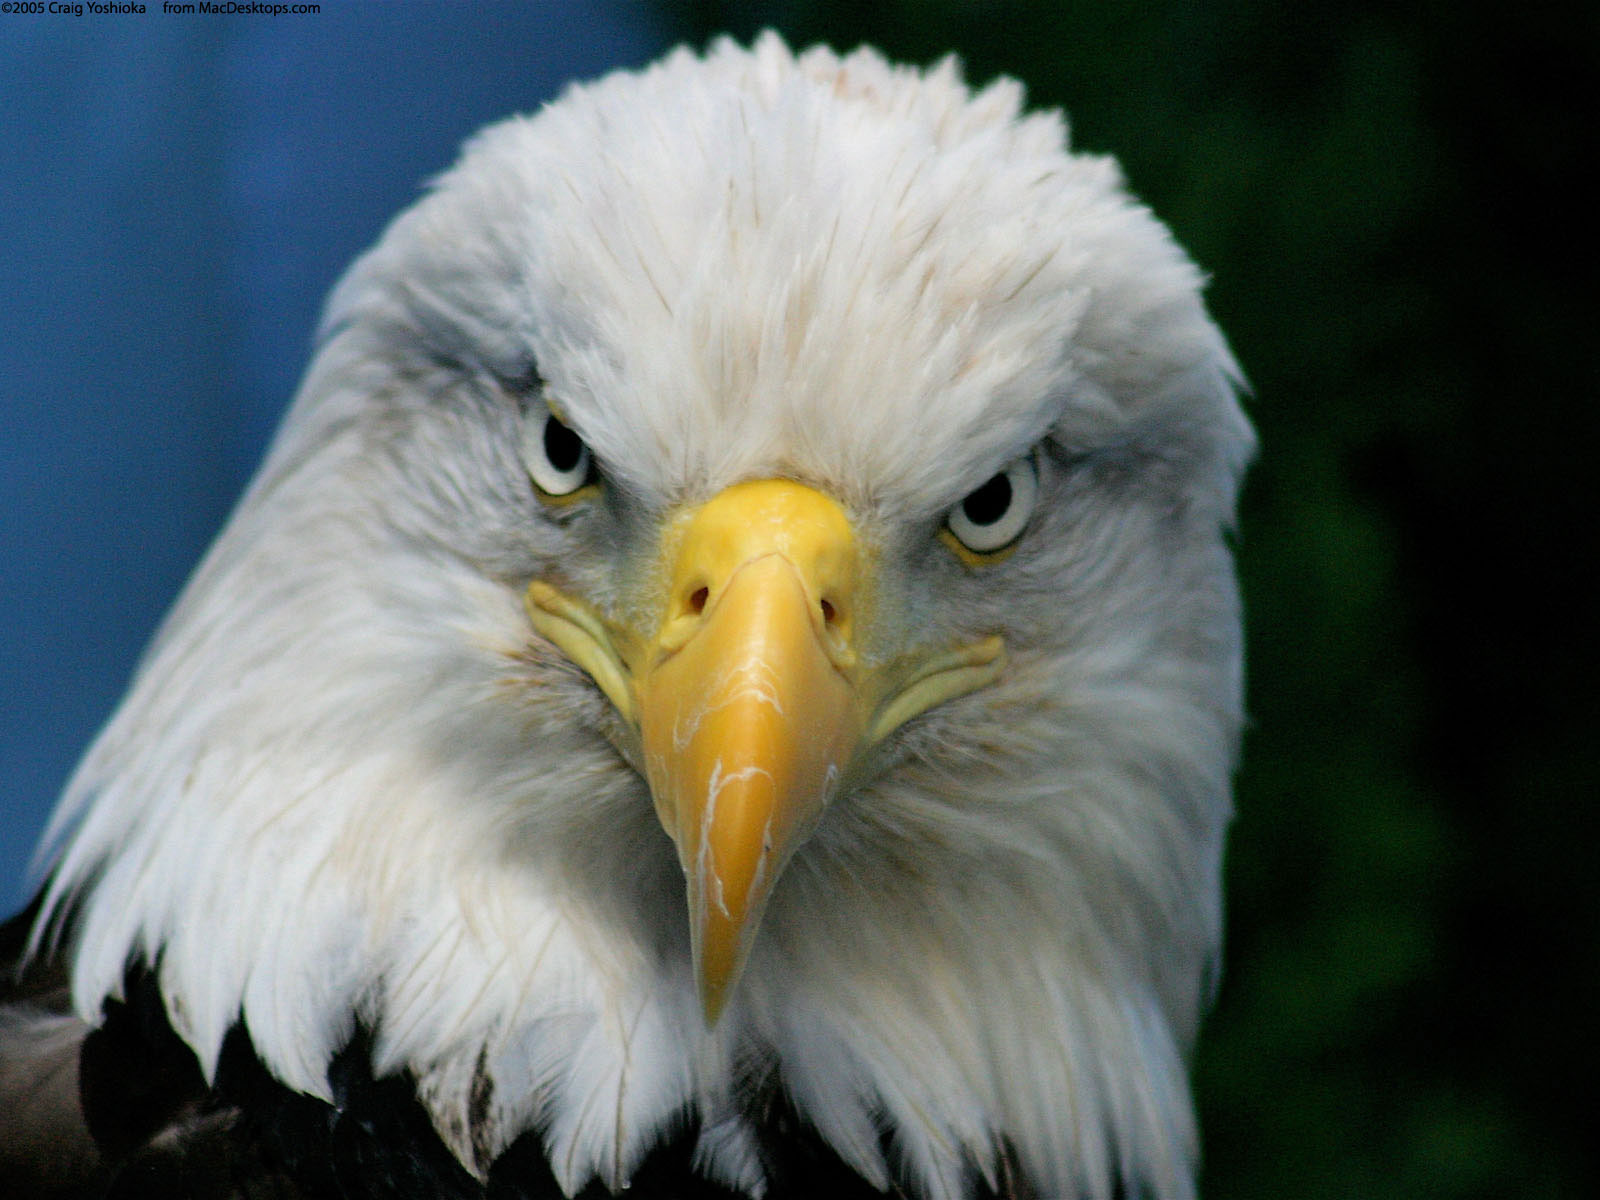 Bald Eagle 312.19 Kb